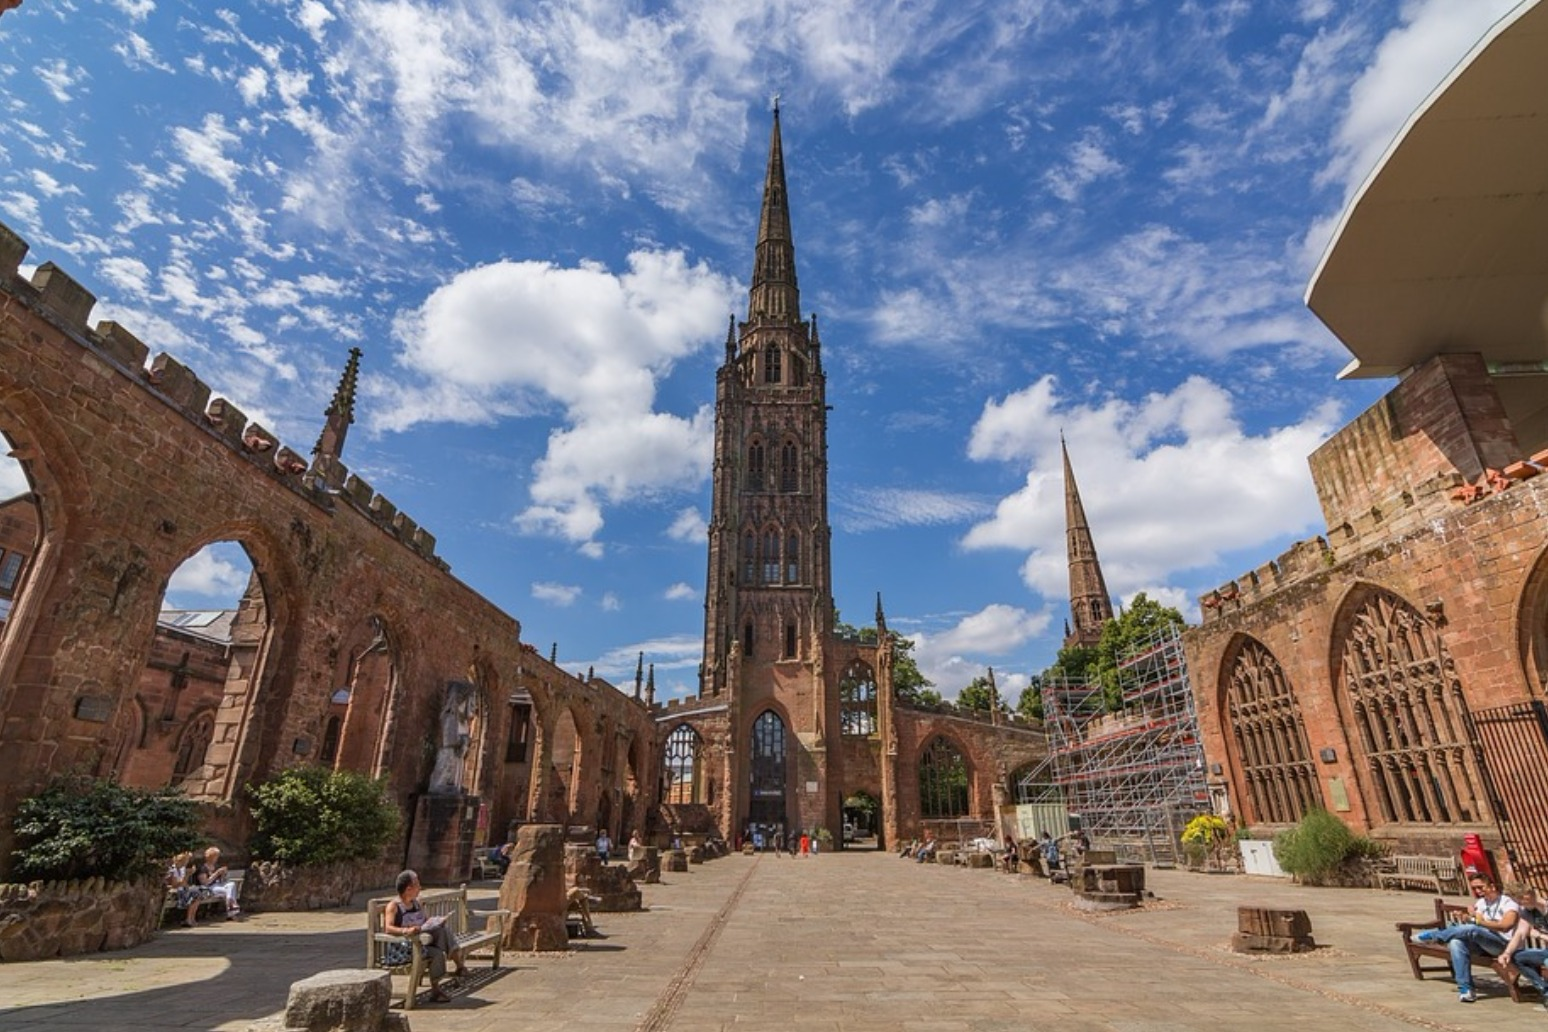 COVENTRY WINS RACE TO BE CROWNED UK CITY OF CULTURE 2021